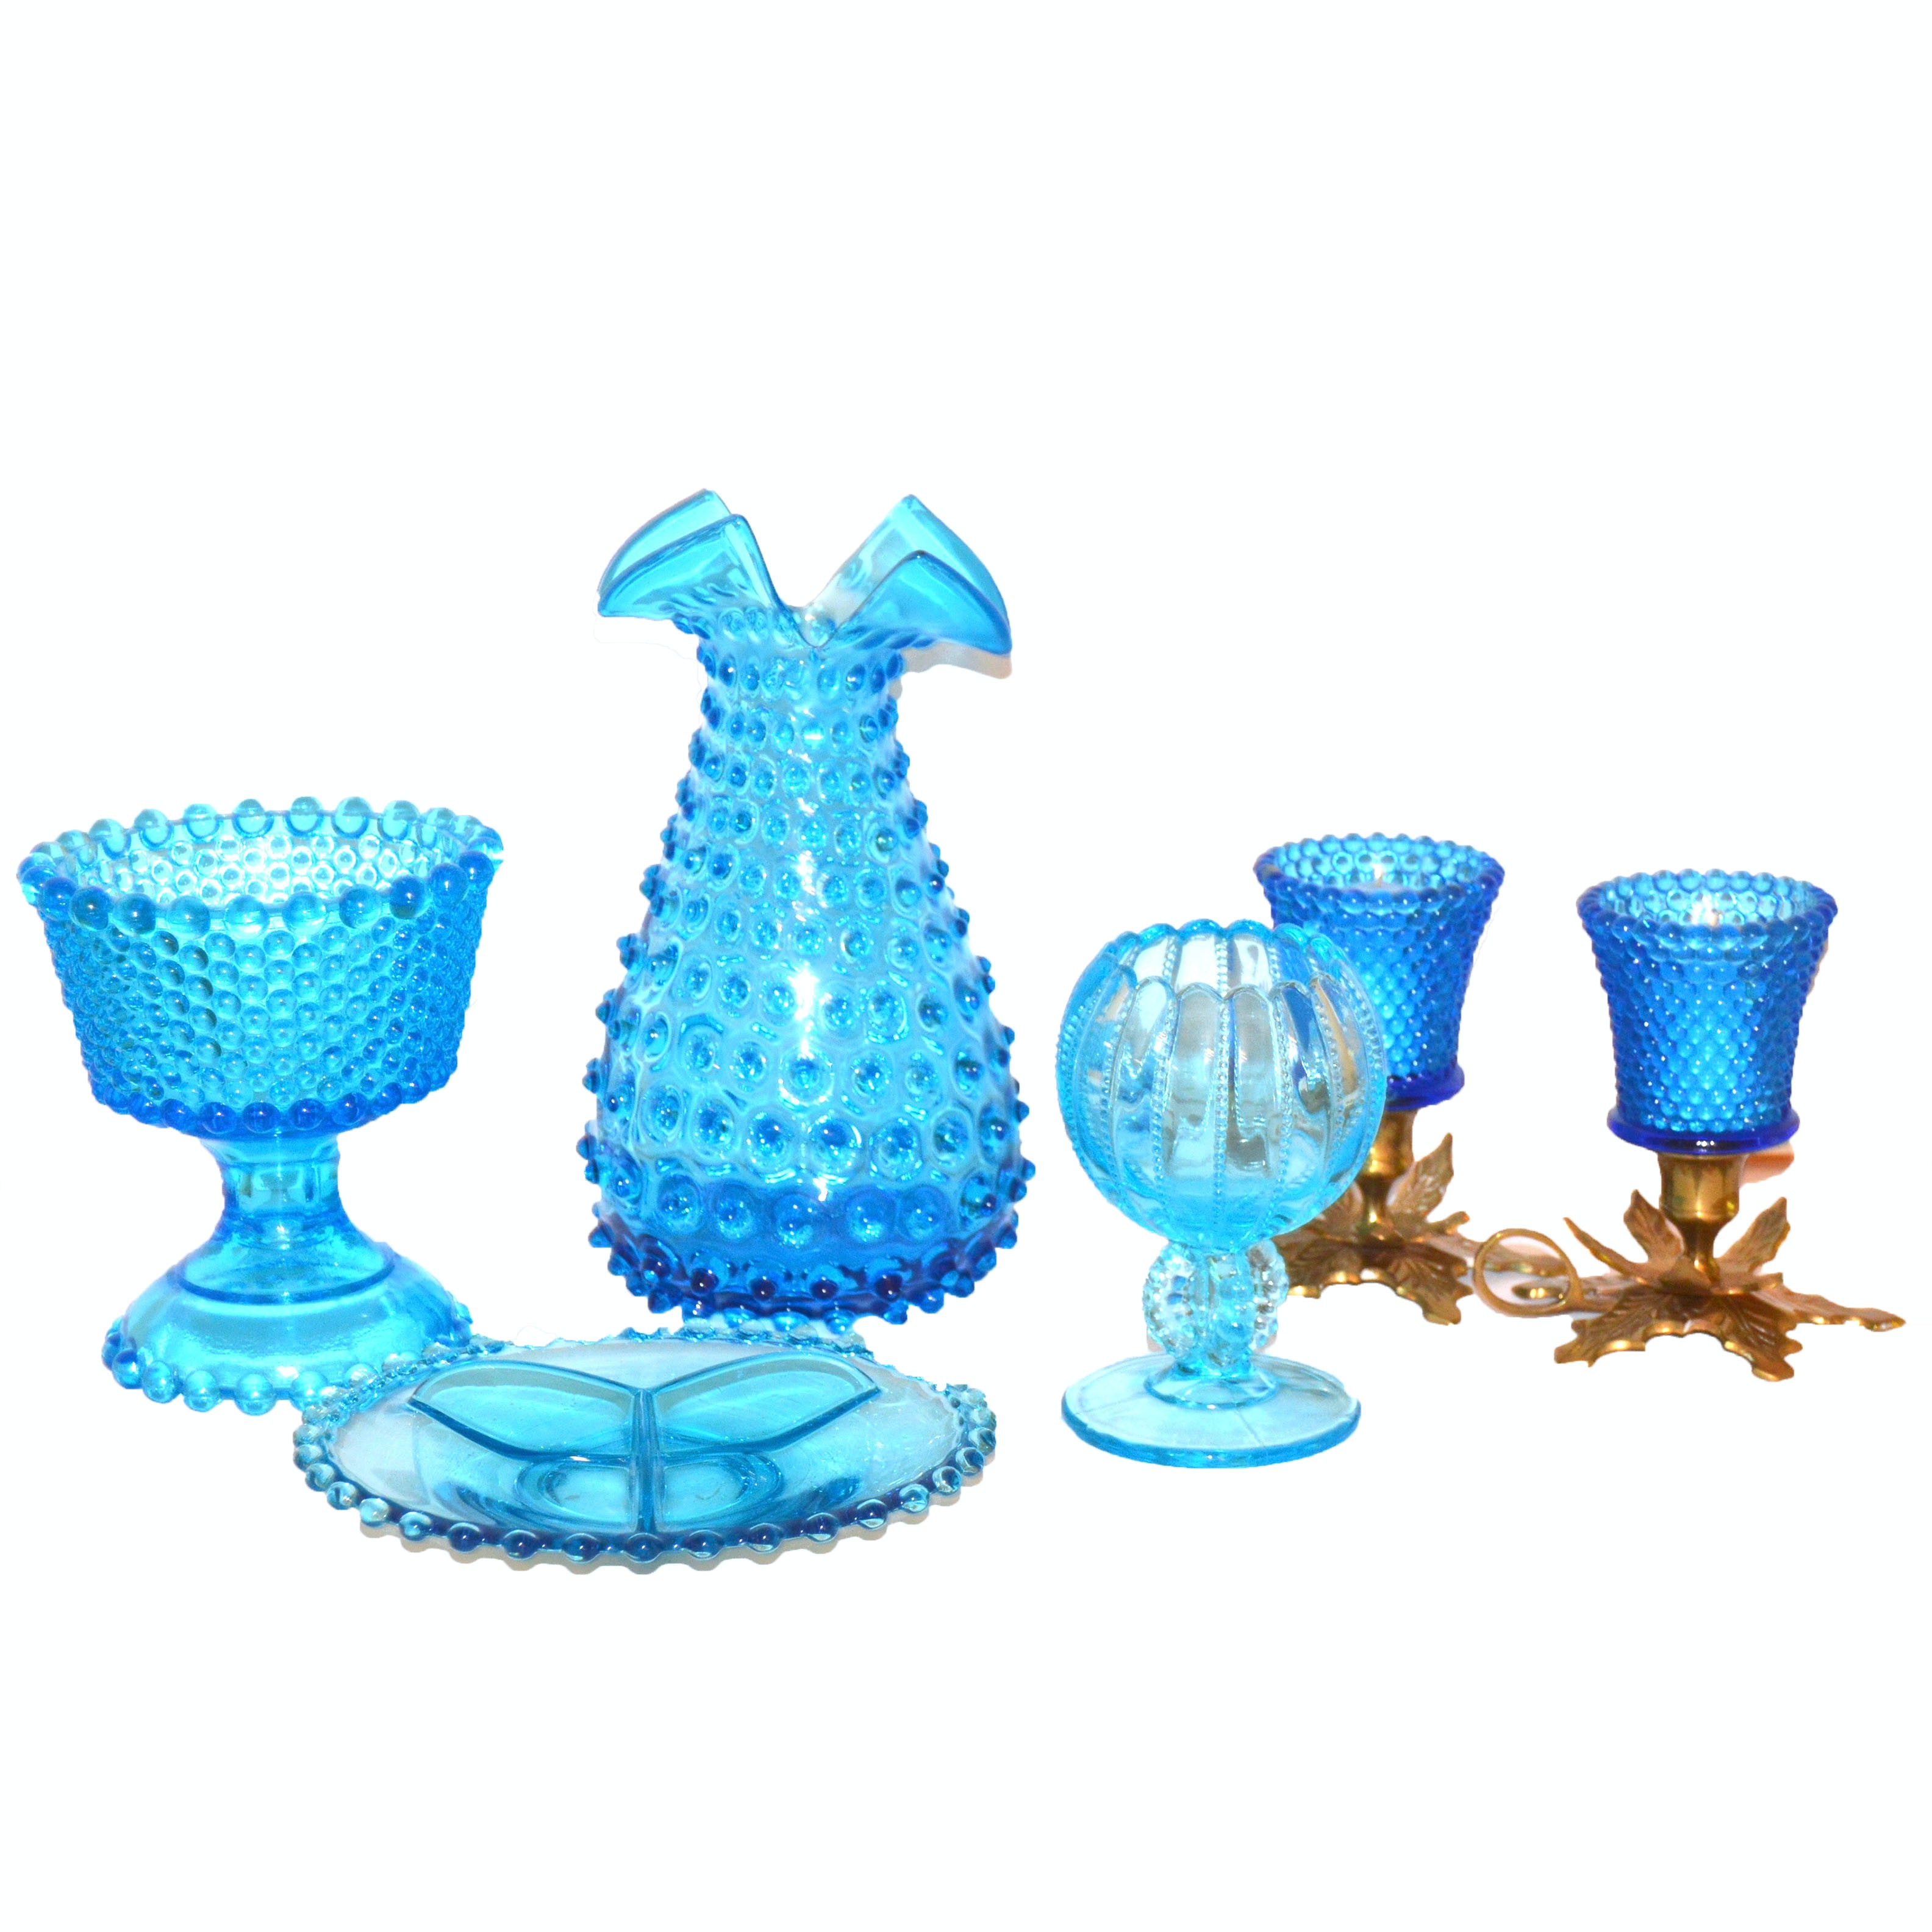 Collection of Hobnail and Vintage Hand-Blown Tableware including Indiana Glass